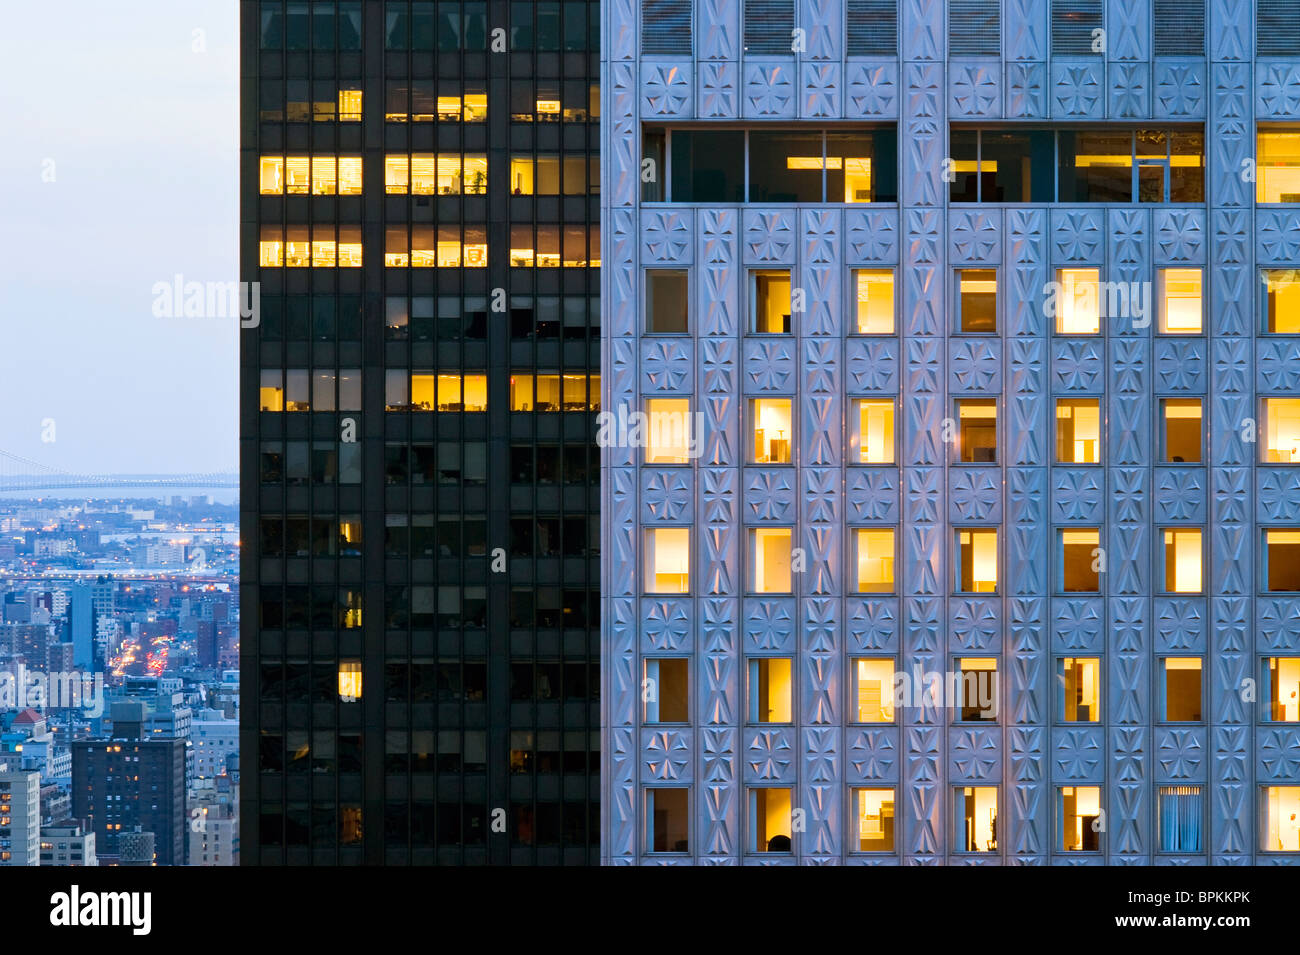 The Mobil Building on 42nd Street, New York City. - Stock Image